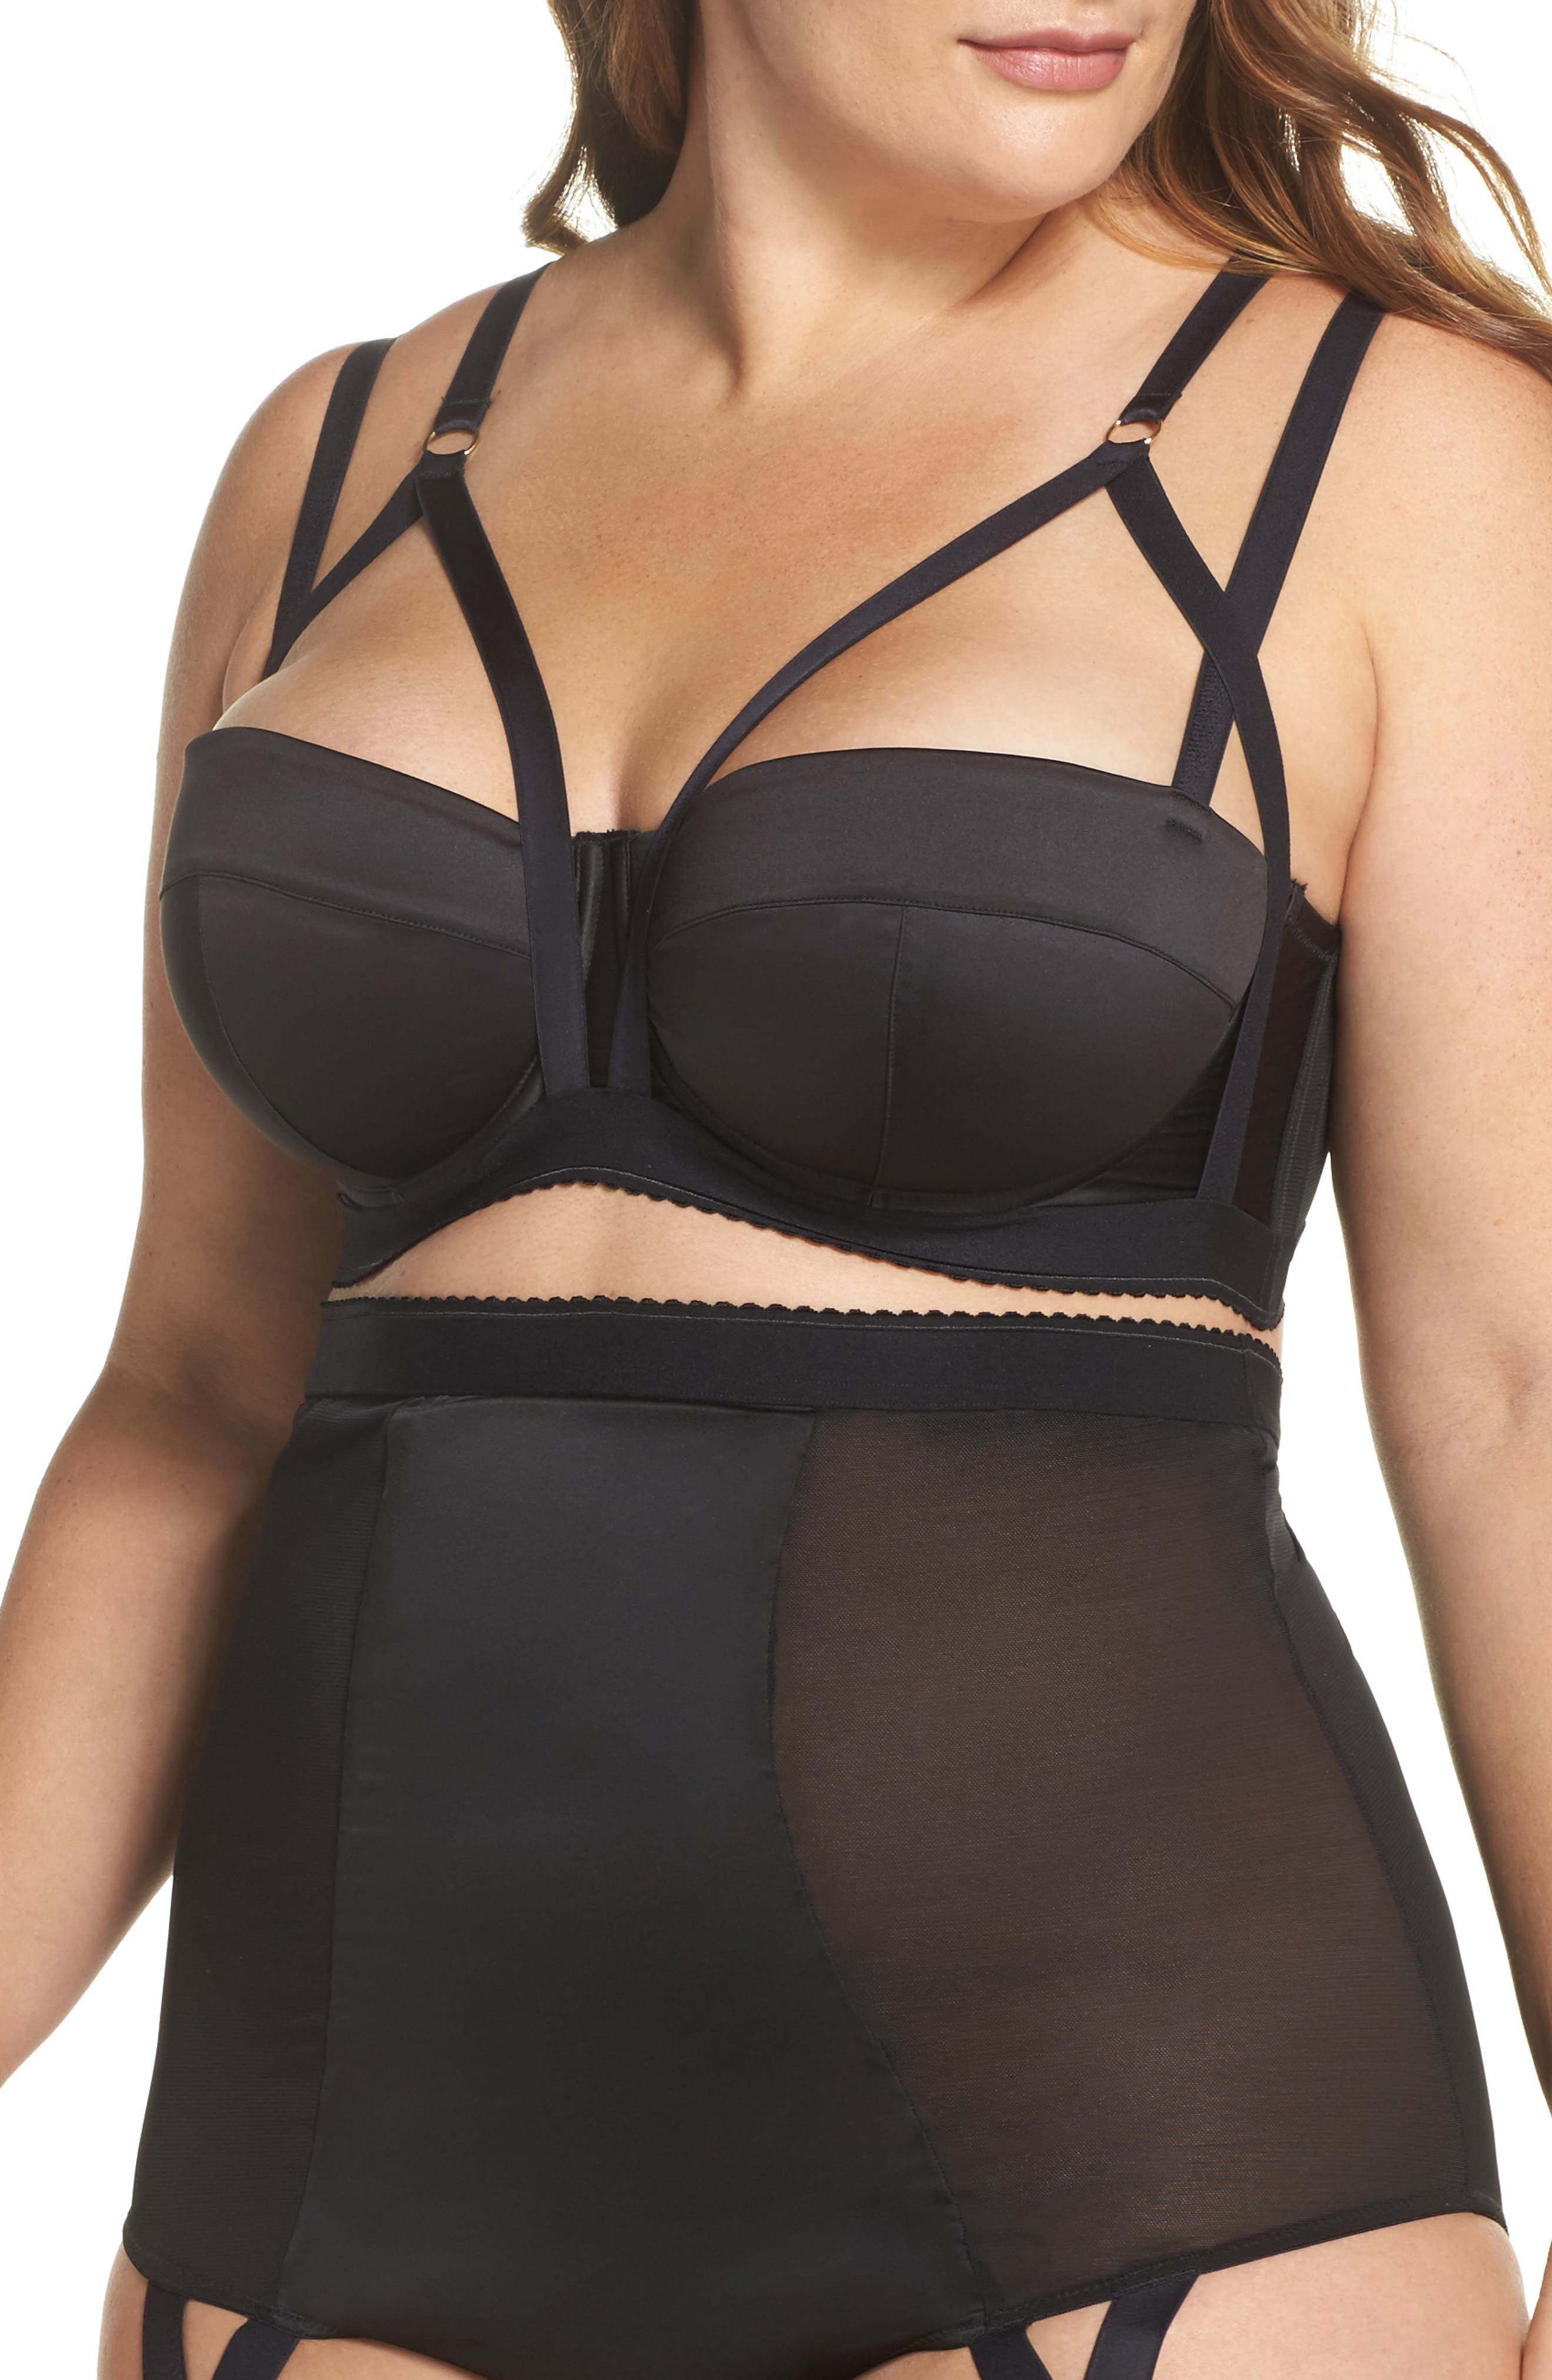 Playful Promies Candace Noir Strappy Underwire Bra (Plus SIze)